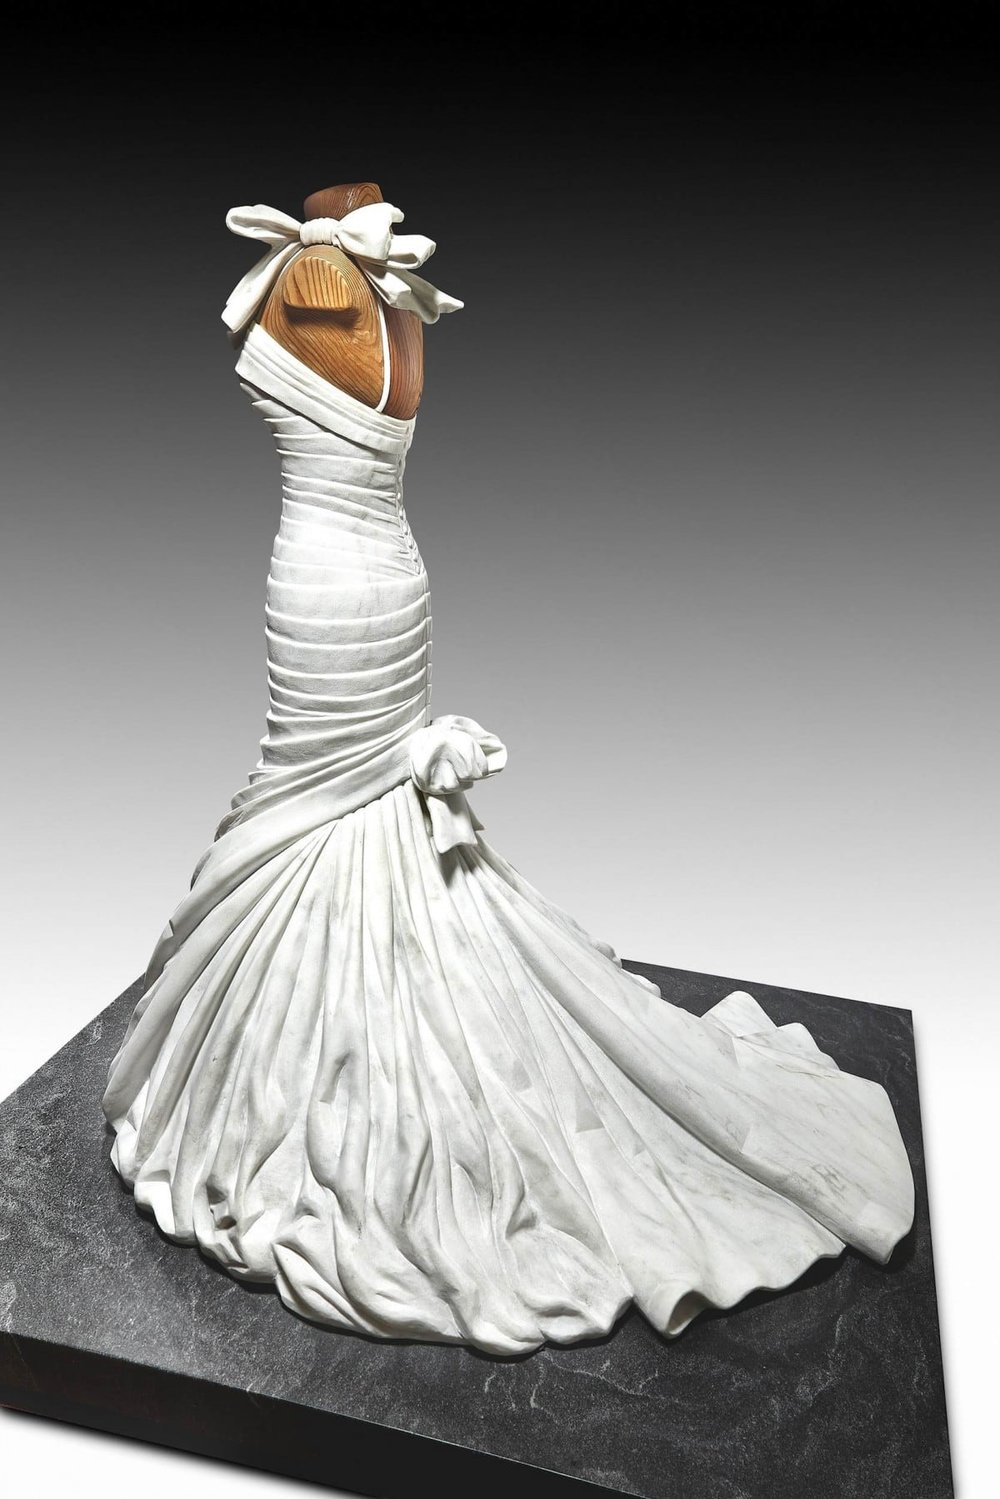 Alasdair-Thomson-Marble-Wedding-Dress-Sculpture-Pnina-Tornai.jpg